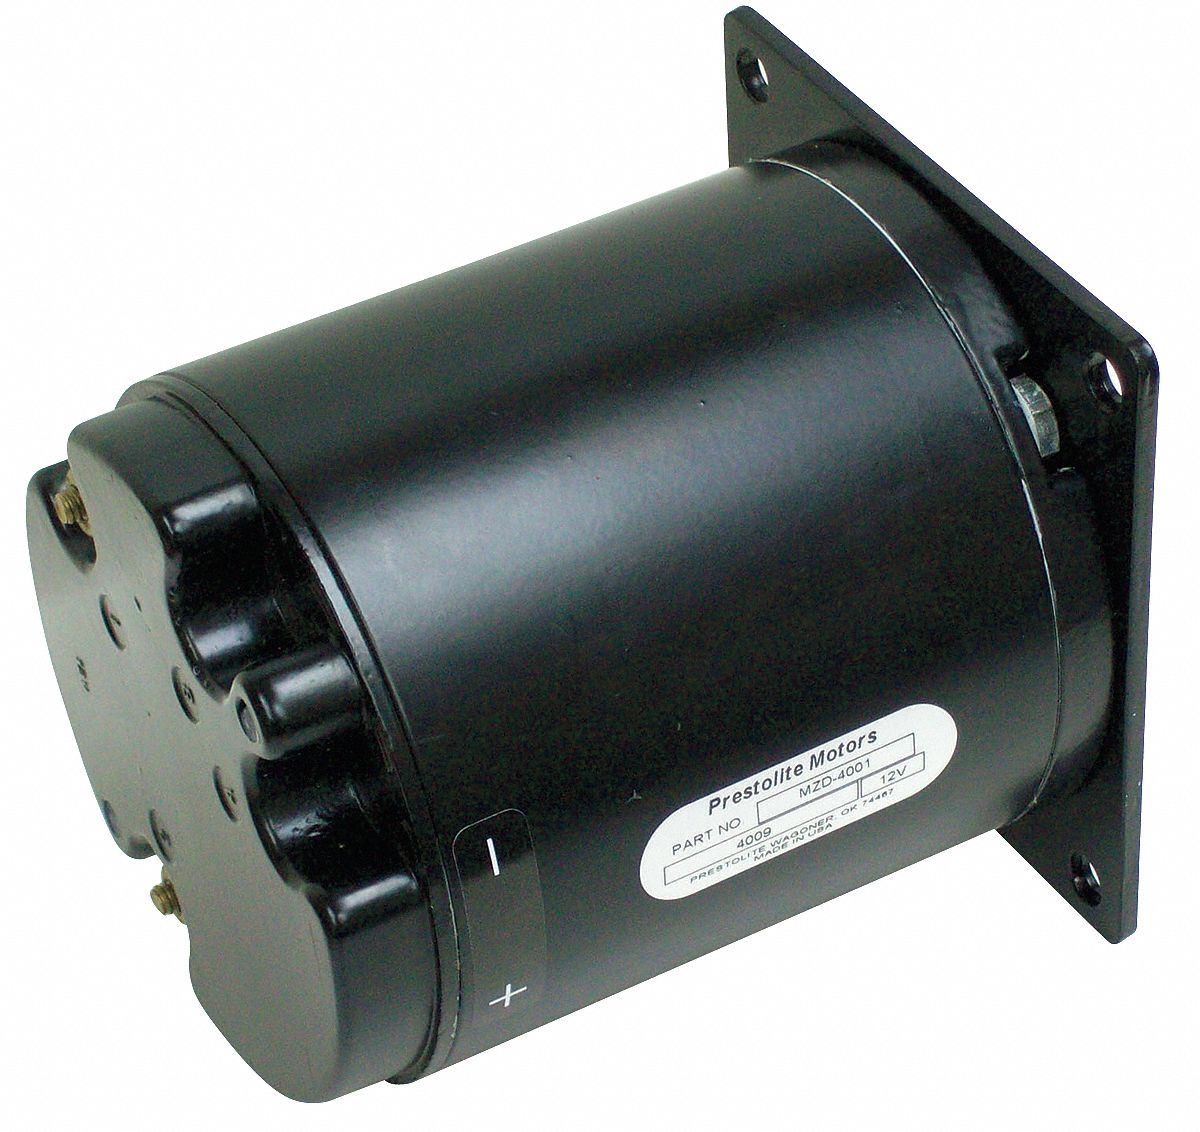 DC Wound Field Motor,  1/6 HP,  Motor Application Variable Speed,  Nameplate RPM 700